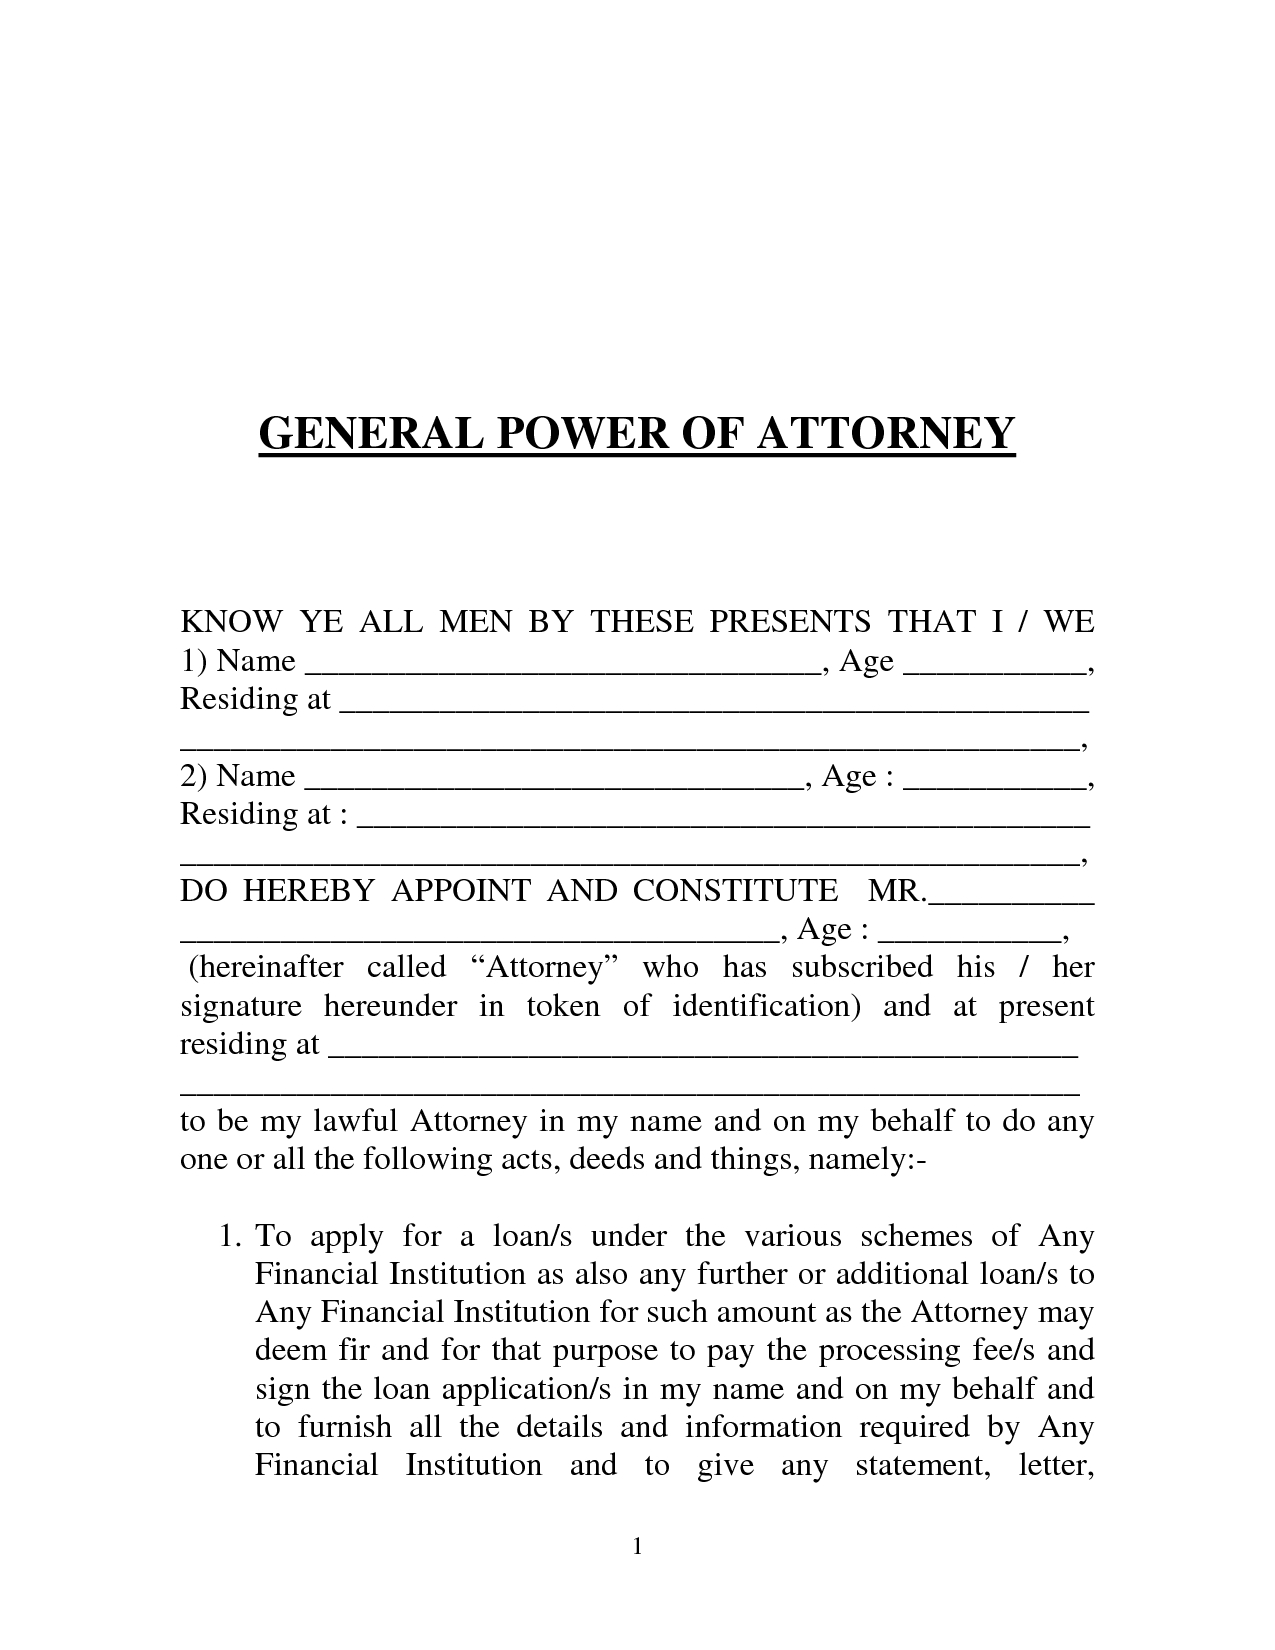 Free Printable Power Of Attorney Form (Generic) - Free Printable Power Of Attorney Forms